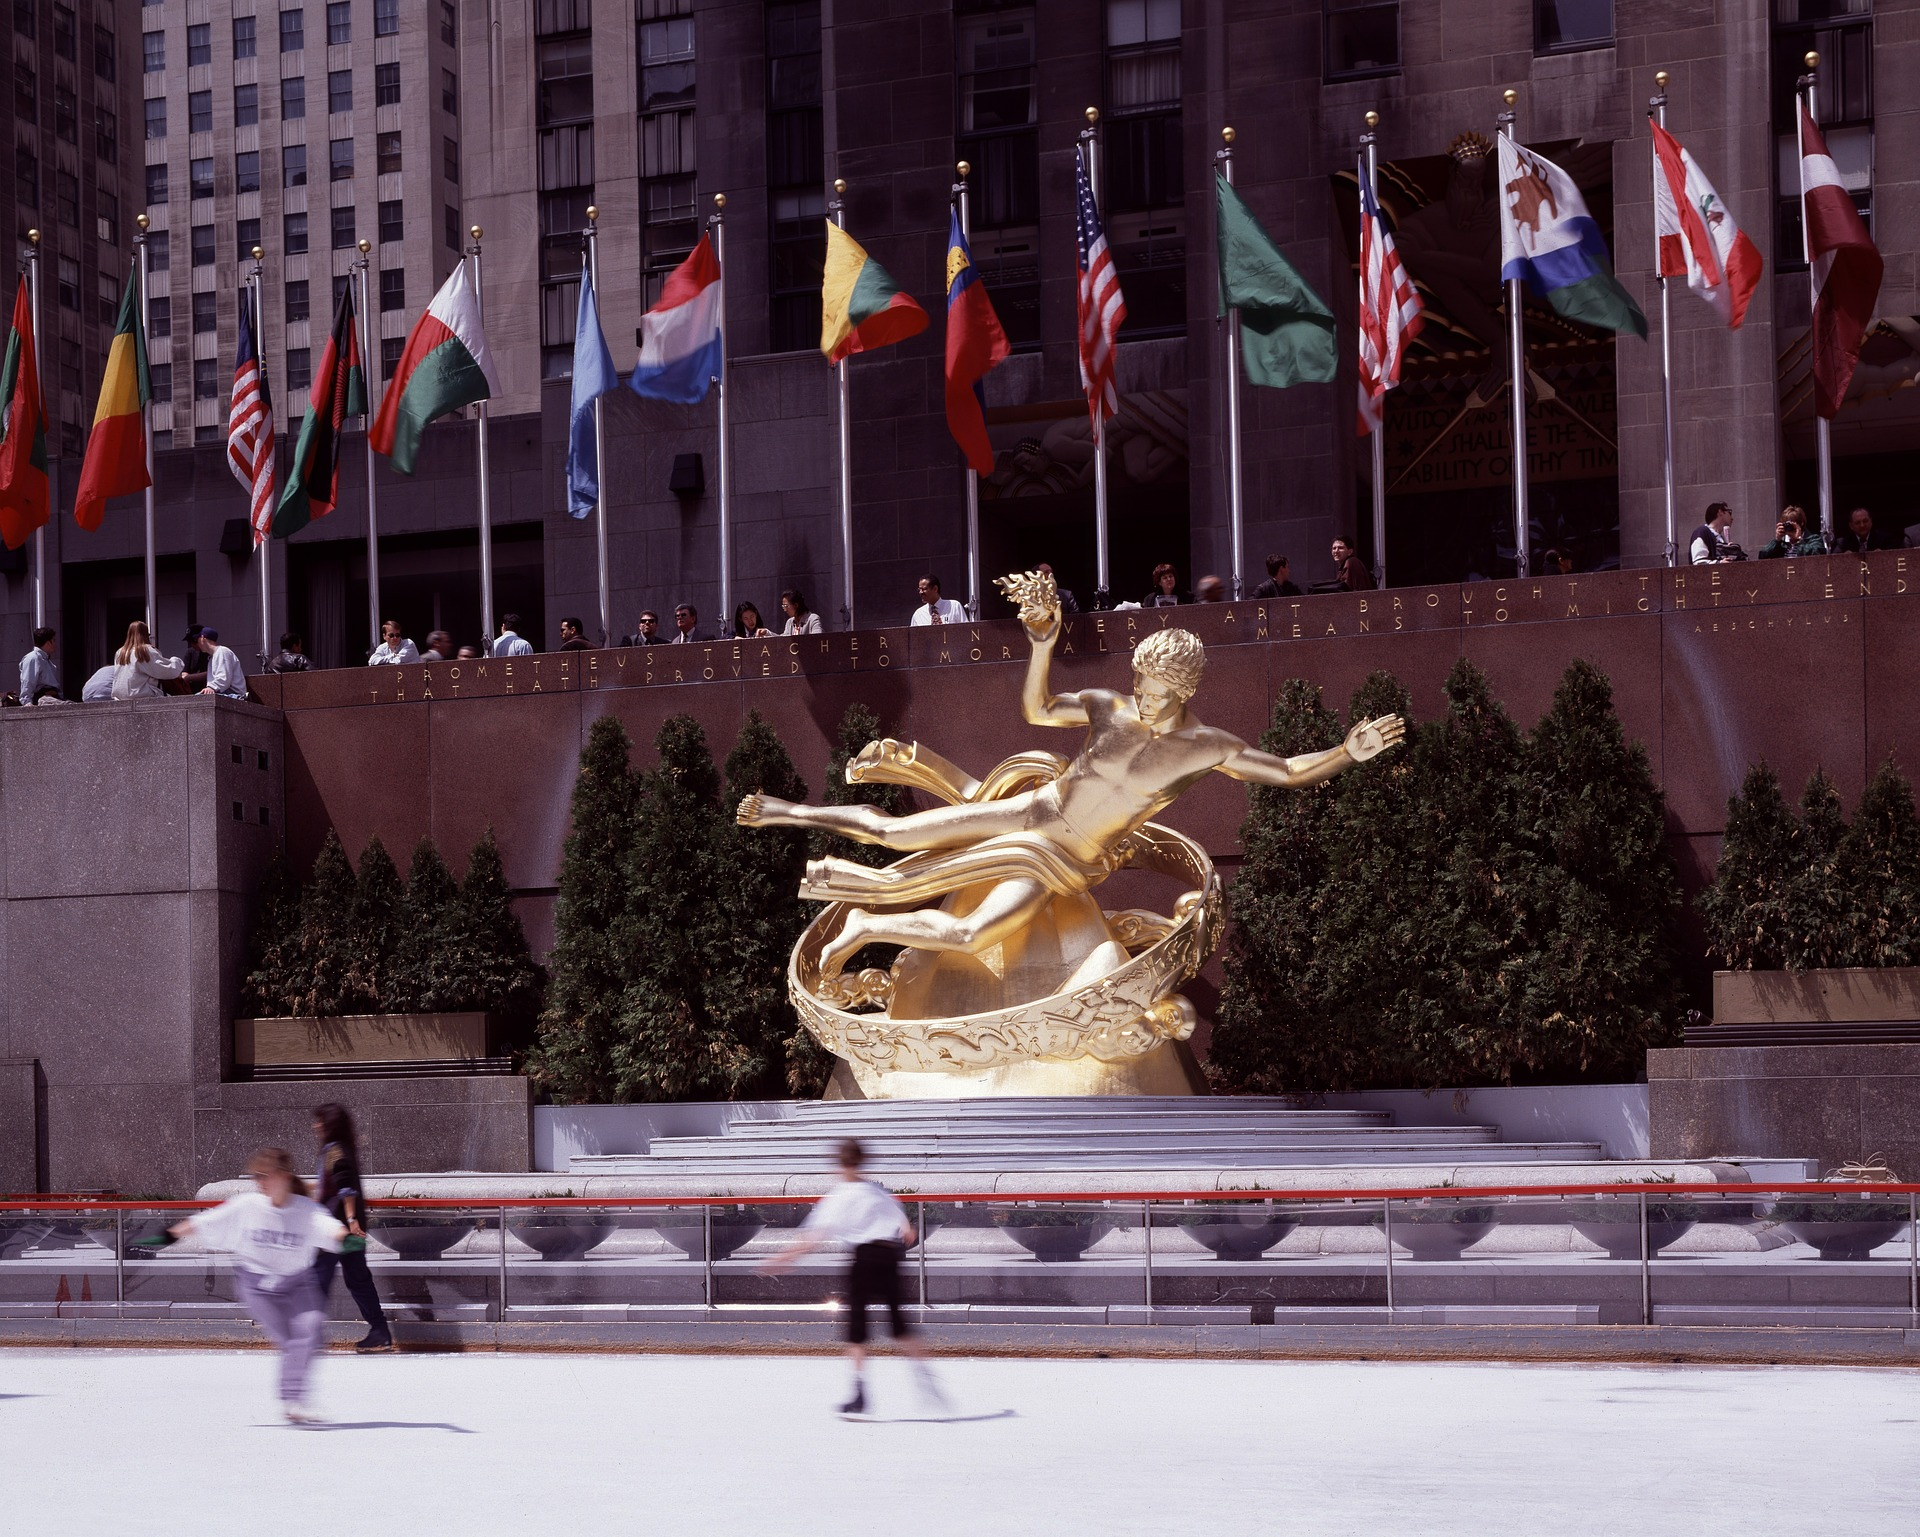 Two ice skaters at Rockefeller Center in front of gold statue and row of national flags